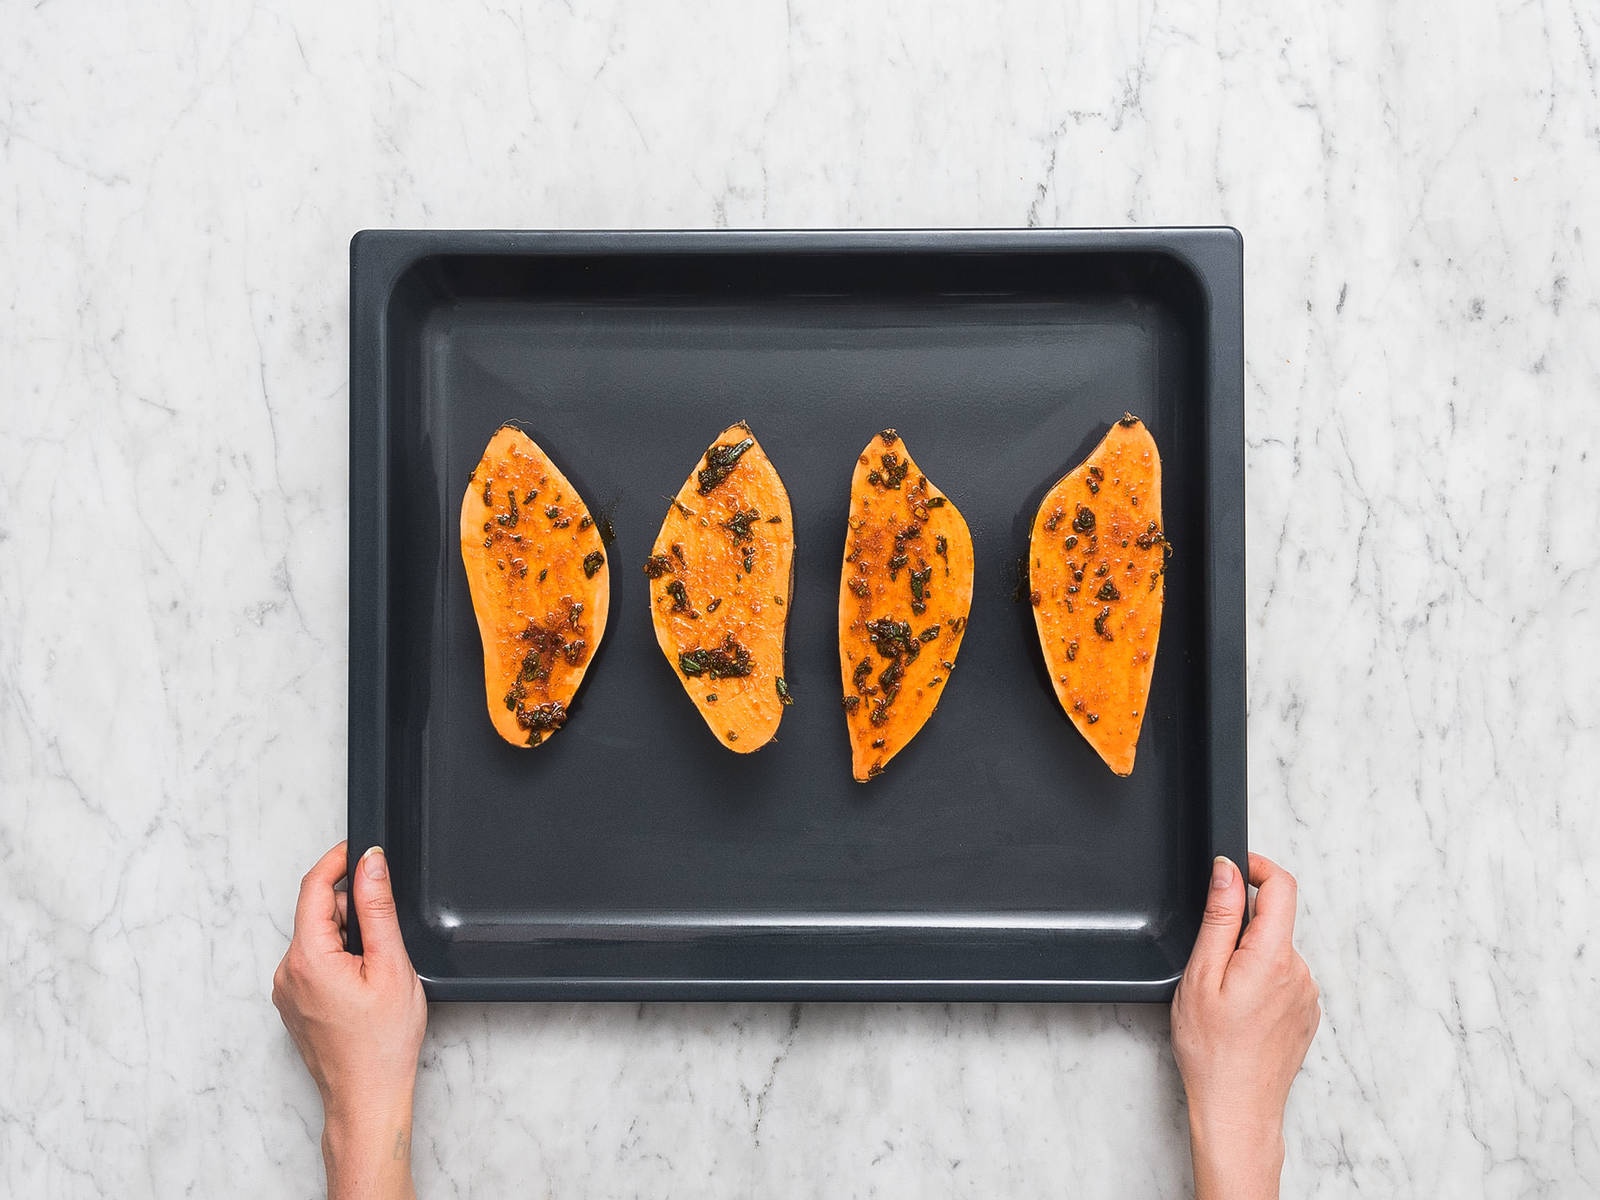 Halve sweet potatoes and brush with marinade. Transfer sweet potatoes to a parchement-lined baking sheet and bake at 220°C/425°F for approx. 15 min., or until fork-tender.